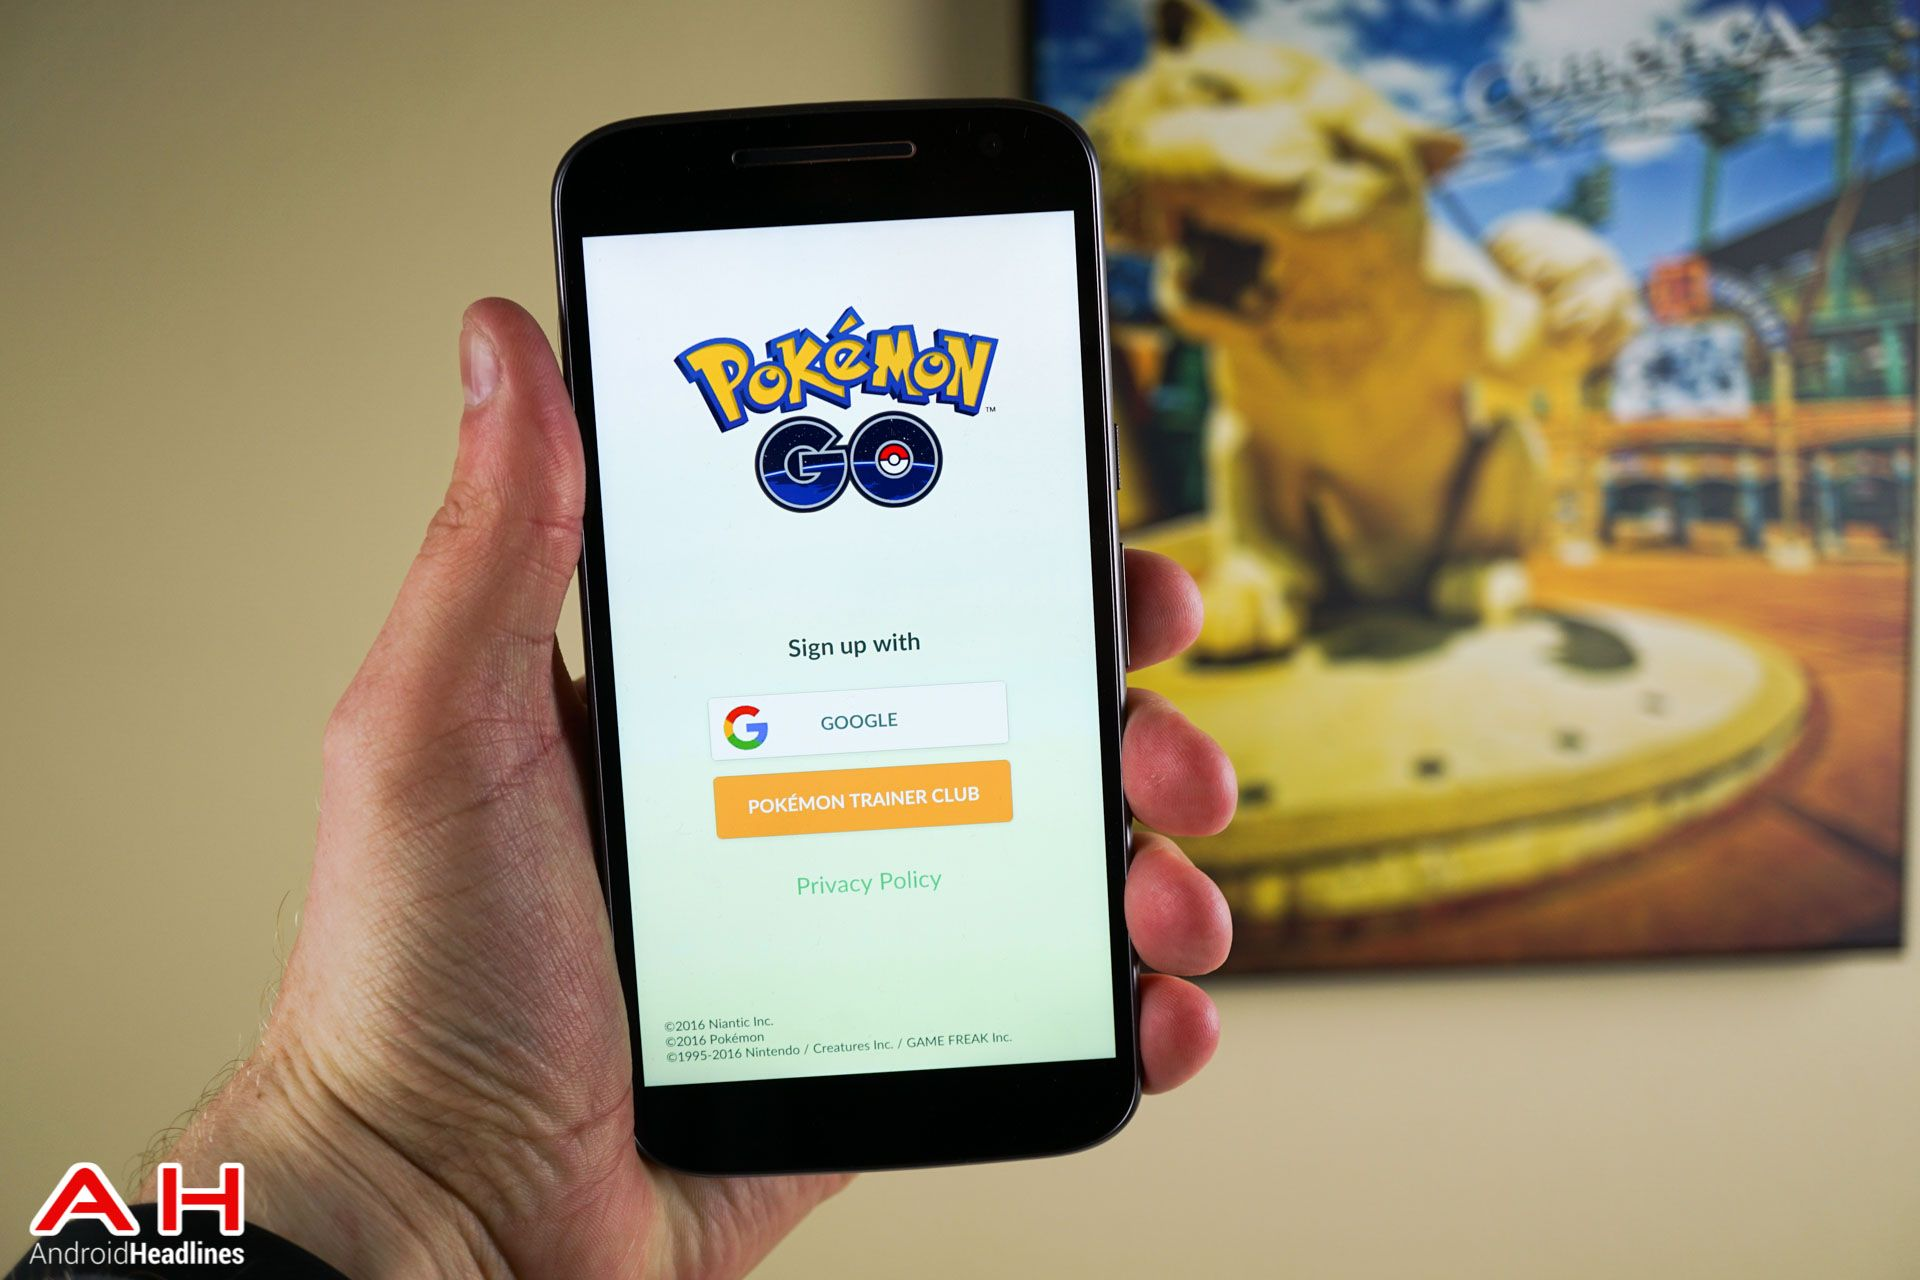 lawsuit filed in canada over pokémon go privacy invasion android